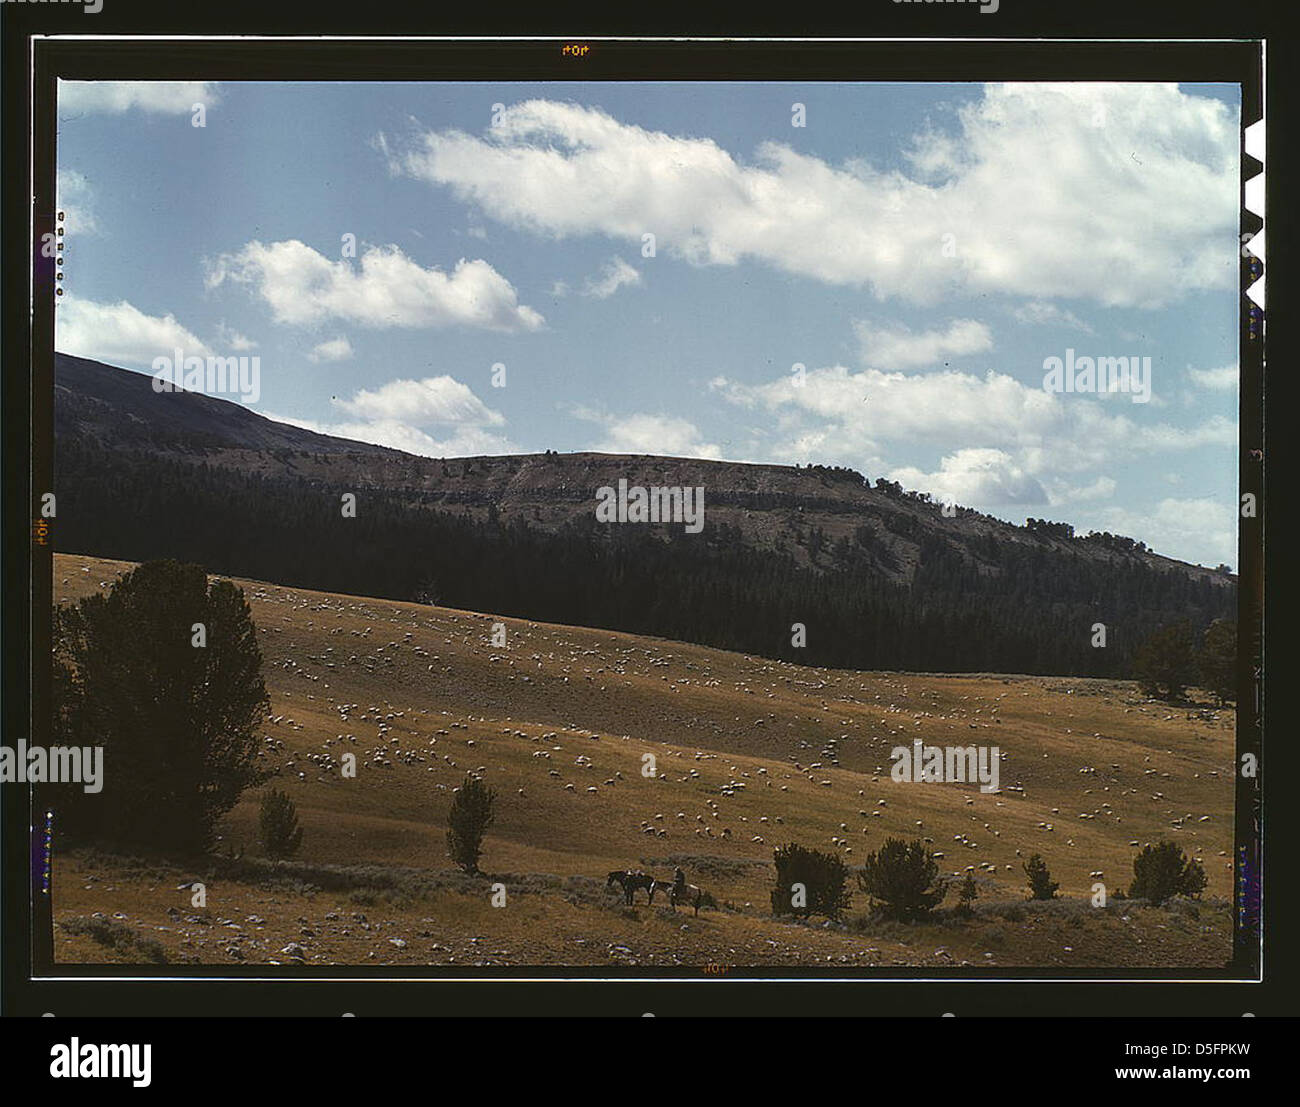 Bands of sheep on the Gravelly Range at the foot of Black Butte, Madison County, Montana (LOC) - Stock Image